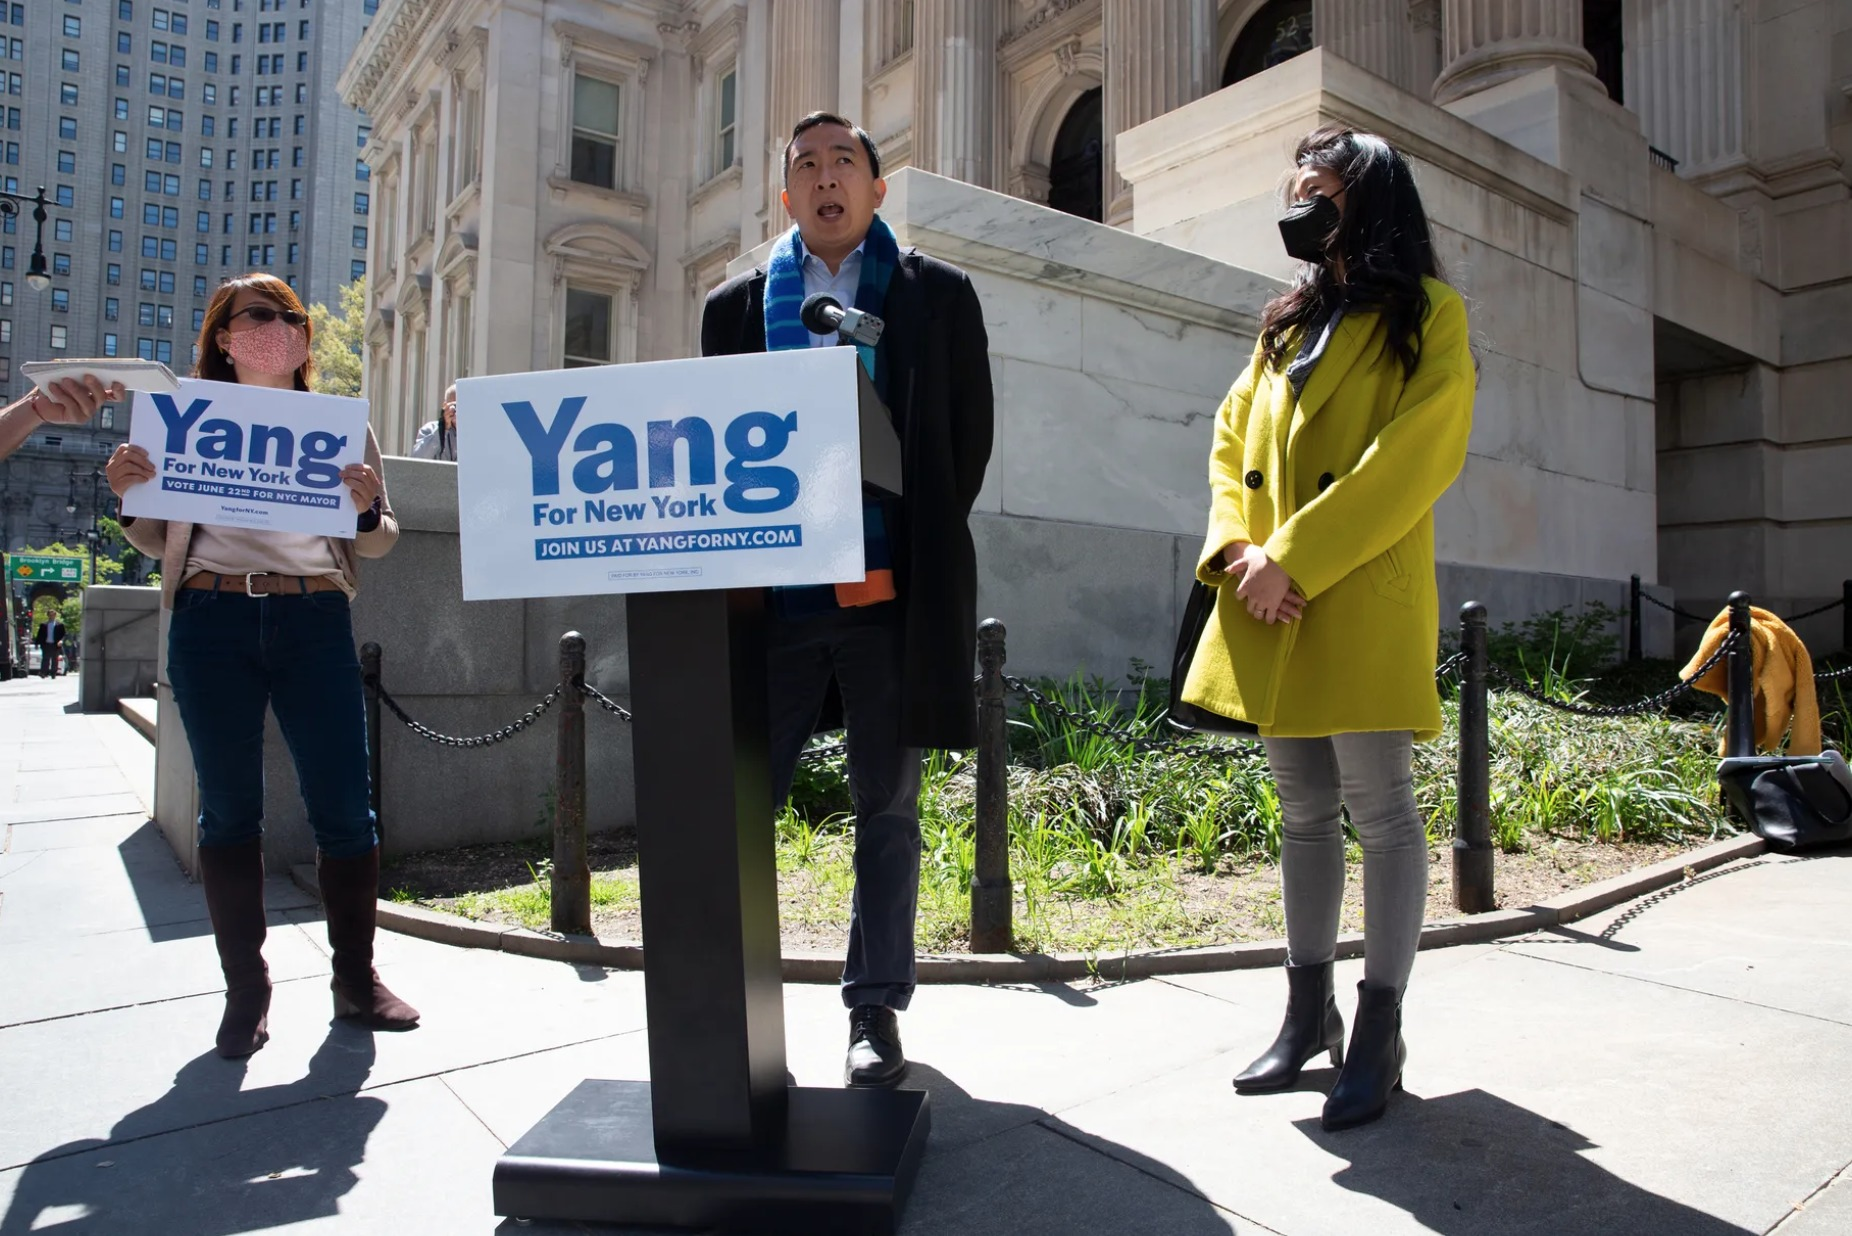 NYC mayoral candidate Andrew Yang speaks at a podium that bears his campaign sign, with a woman holding his campaign sign on his left and a woman wearing a yellow coat to his right.